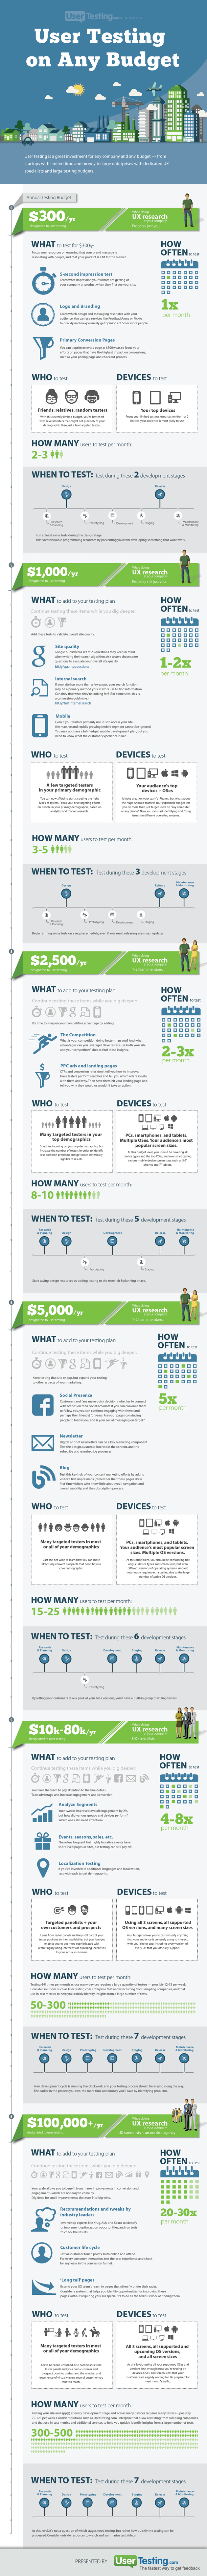 User Testing on Any Budget Infographic